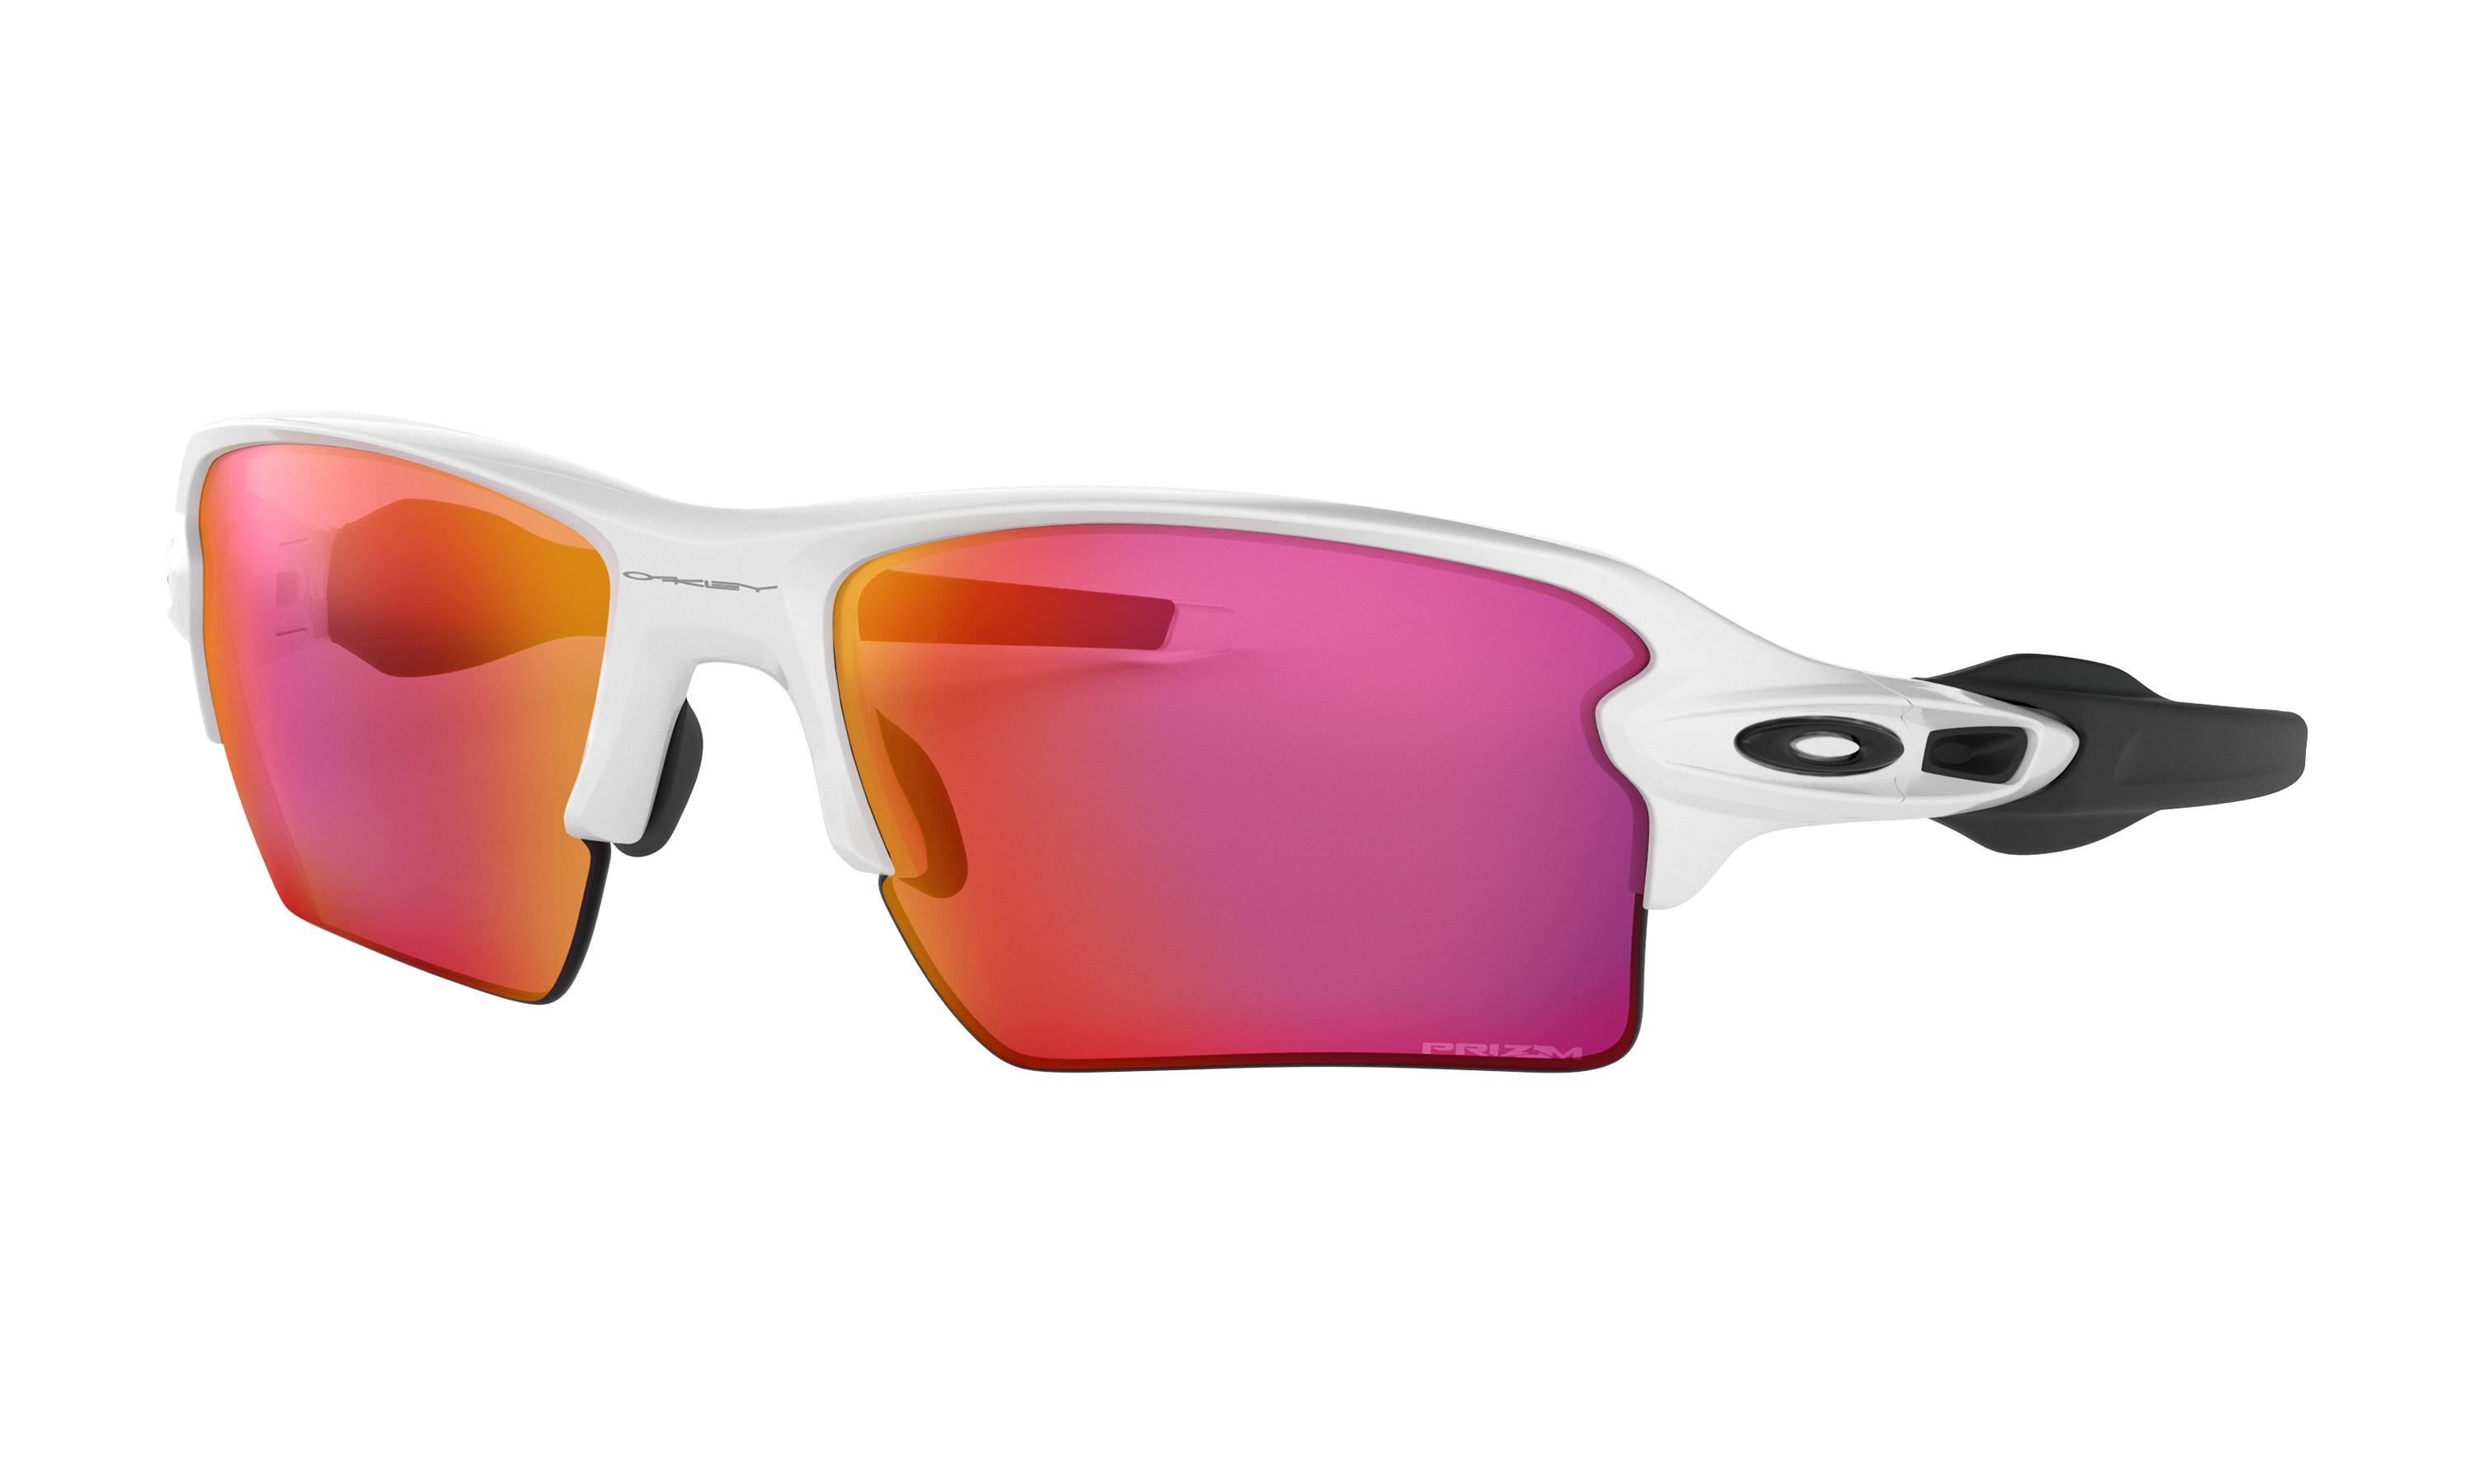 050f02c088 Oakley® Flak 2.0 XL - PRIZM Prescription Available